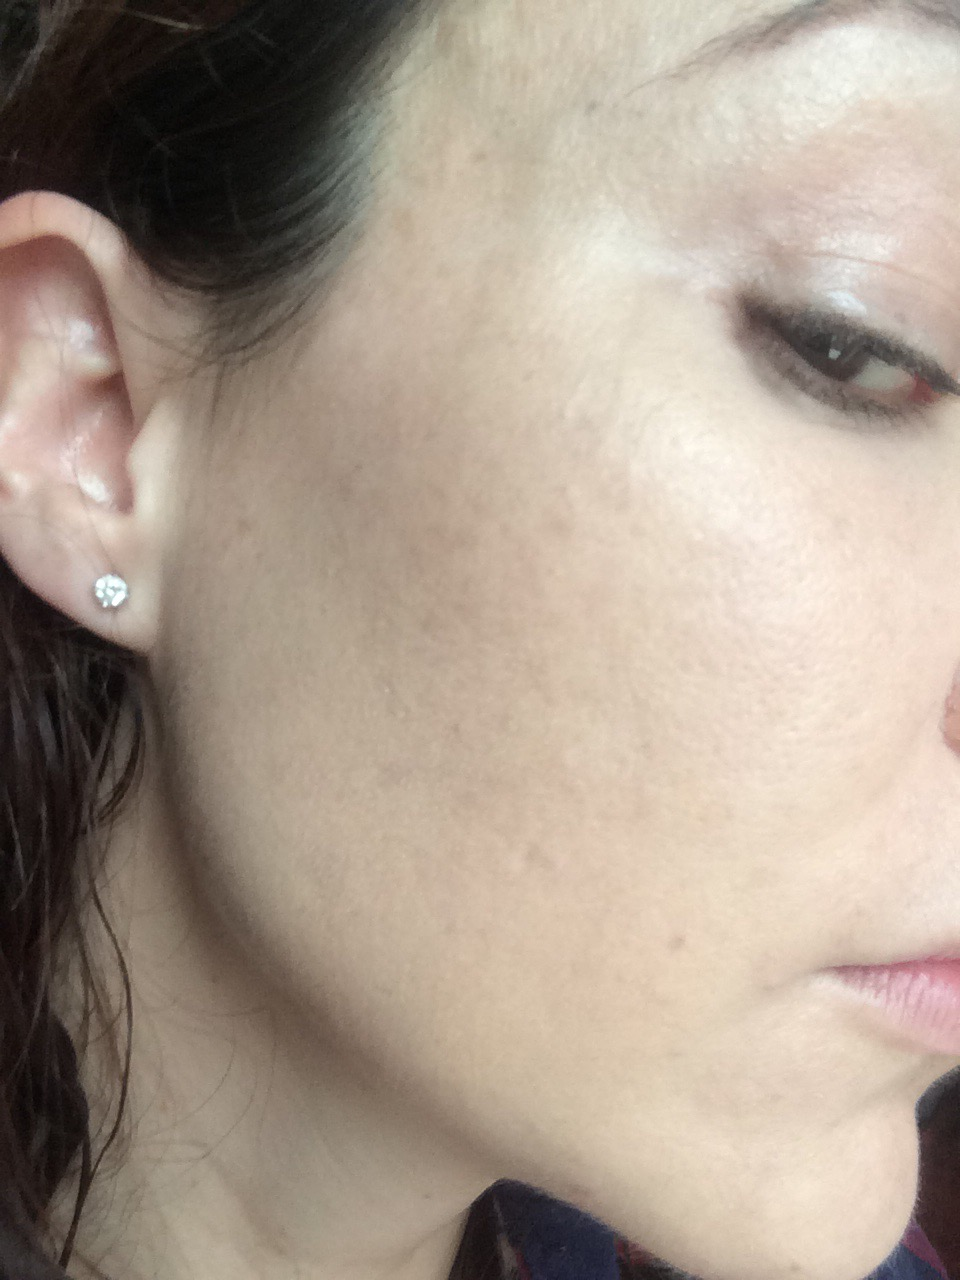 vichy-dermablend- corrective-foundation-review- with-foundation- pigmentation-gone